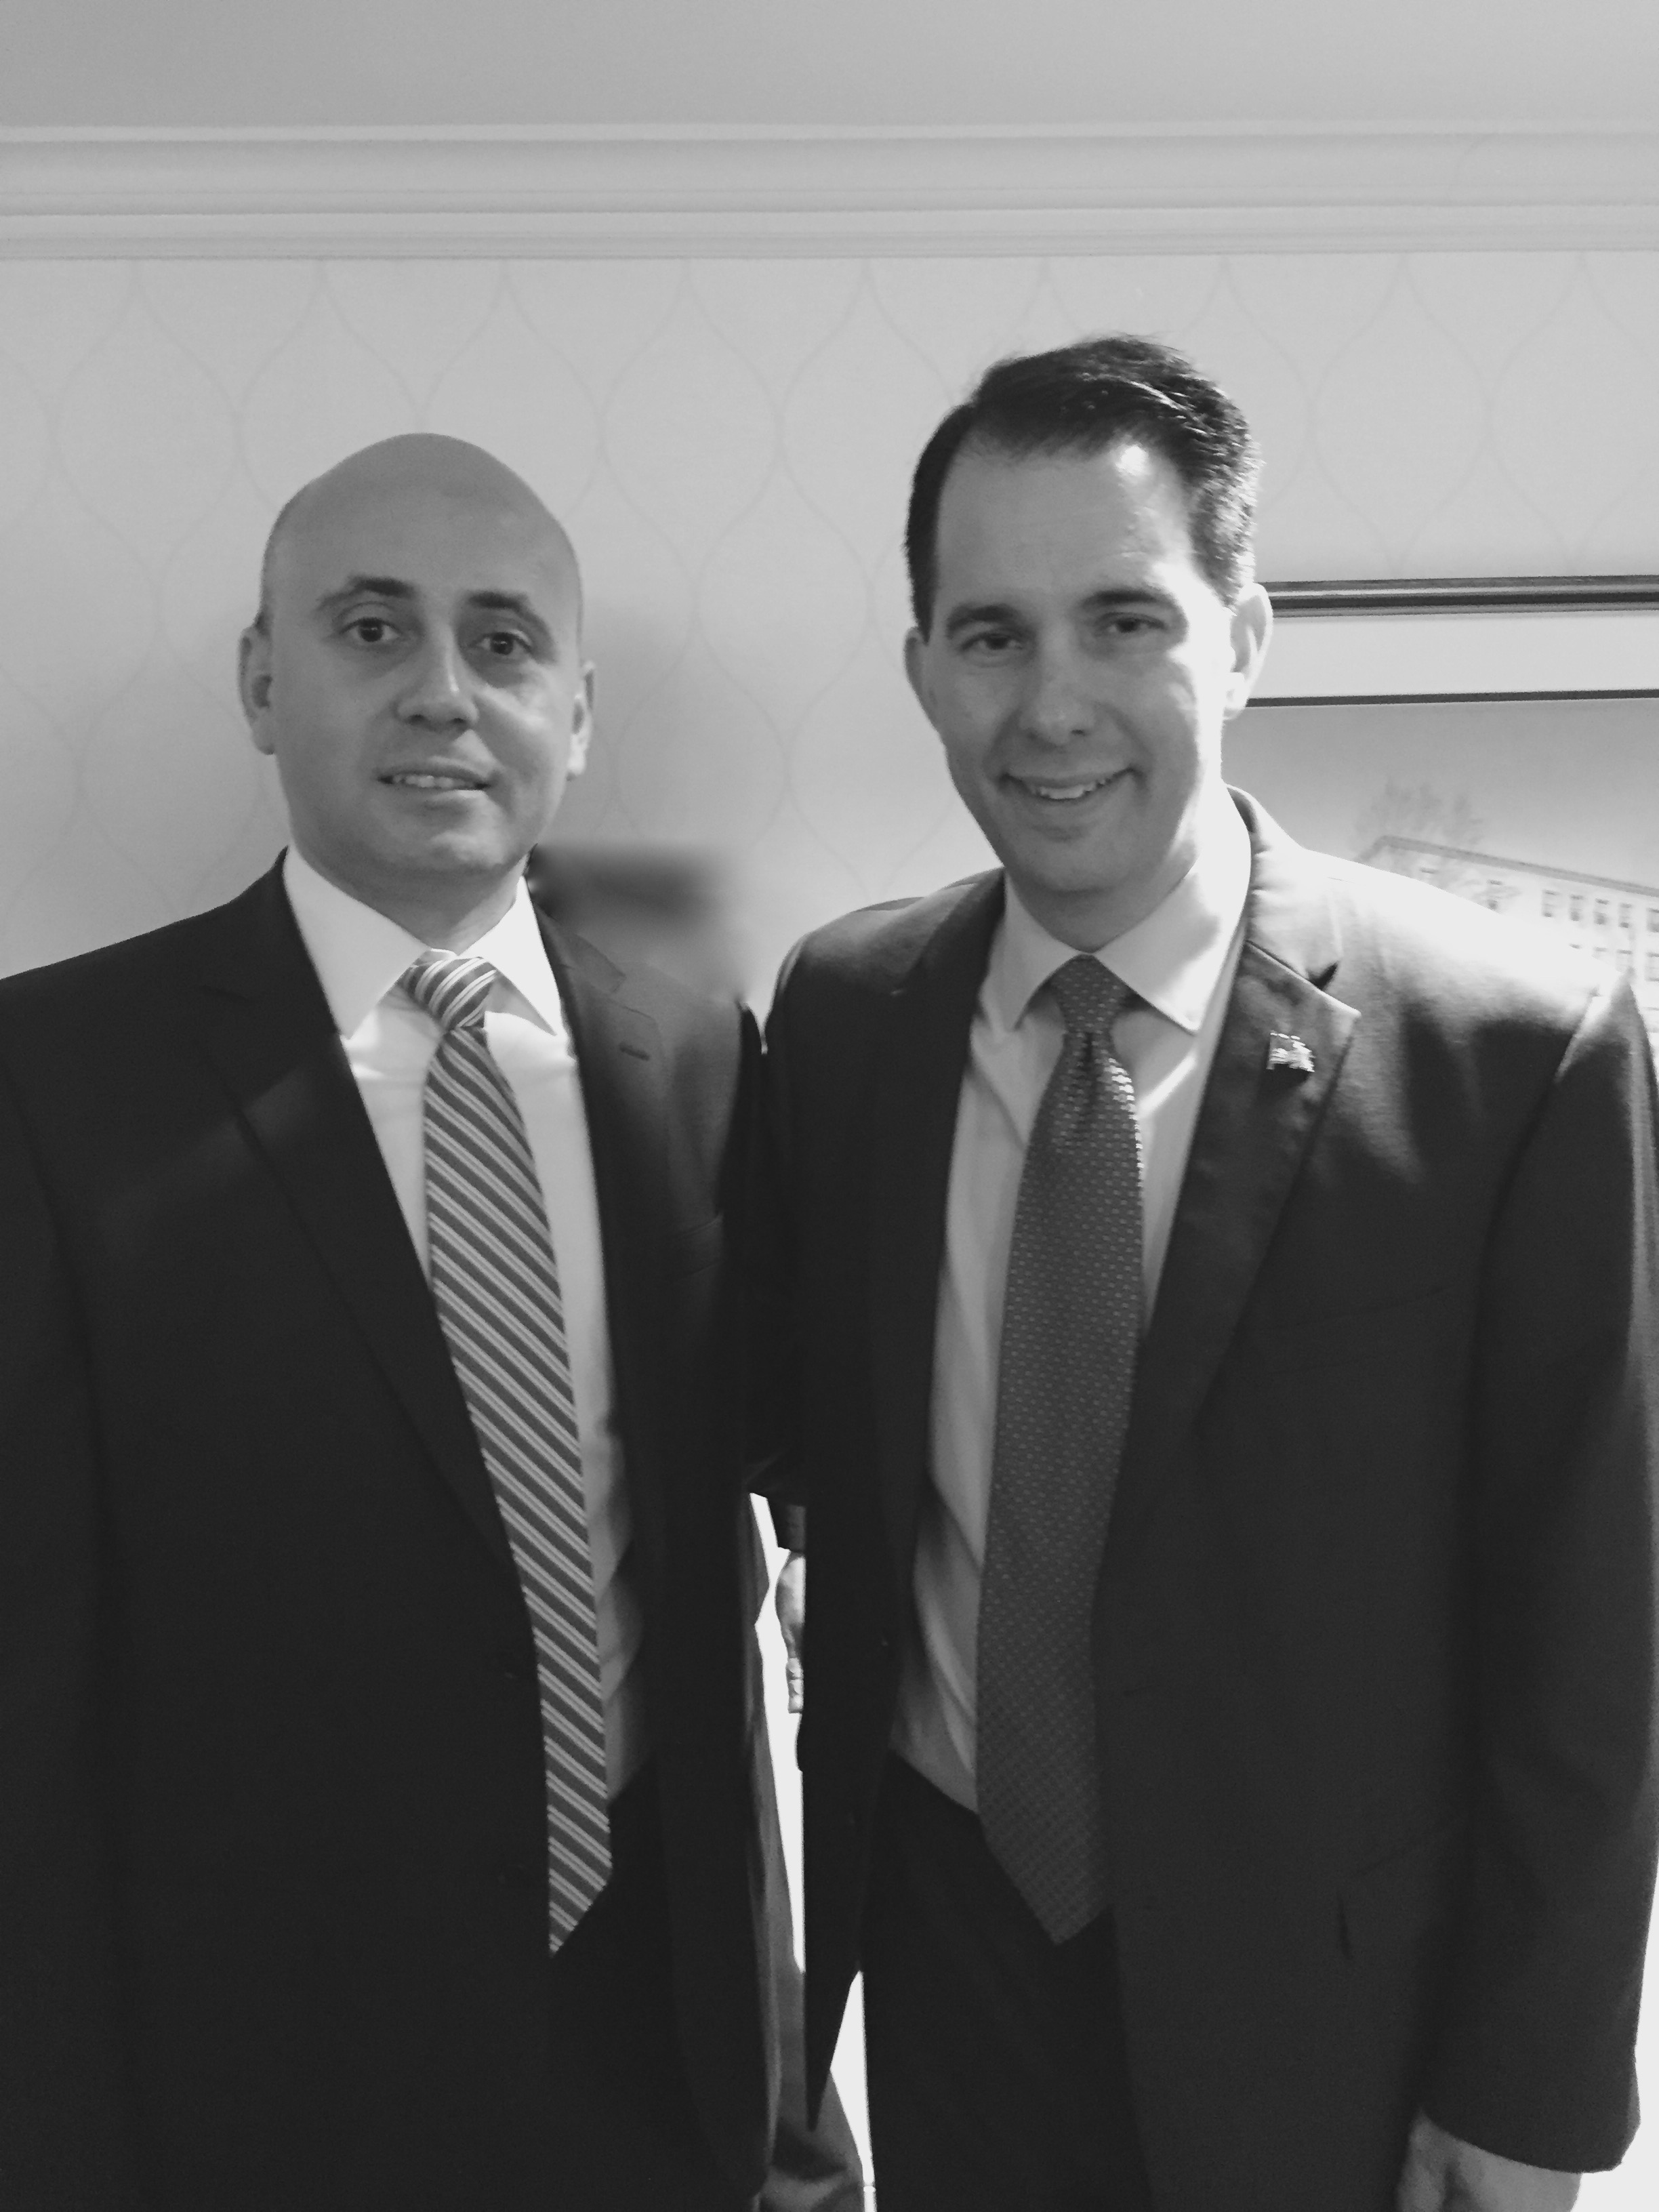 Bilal Eksili with WI Governor Scott Walker